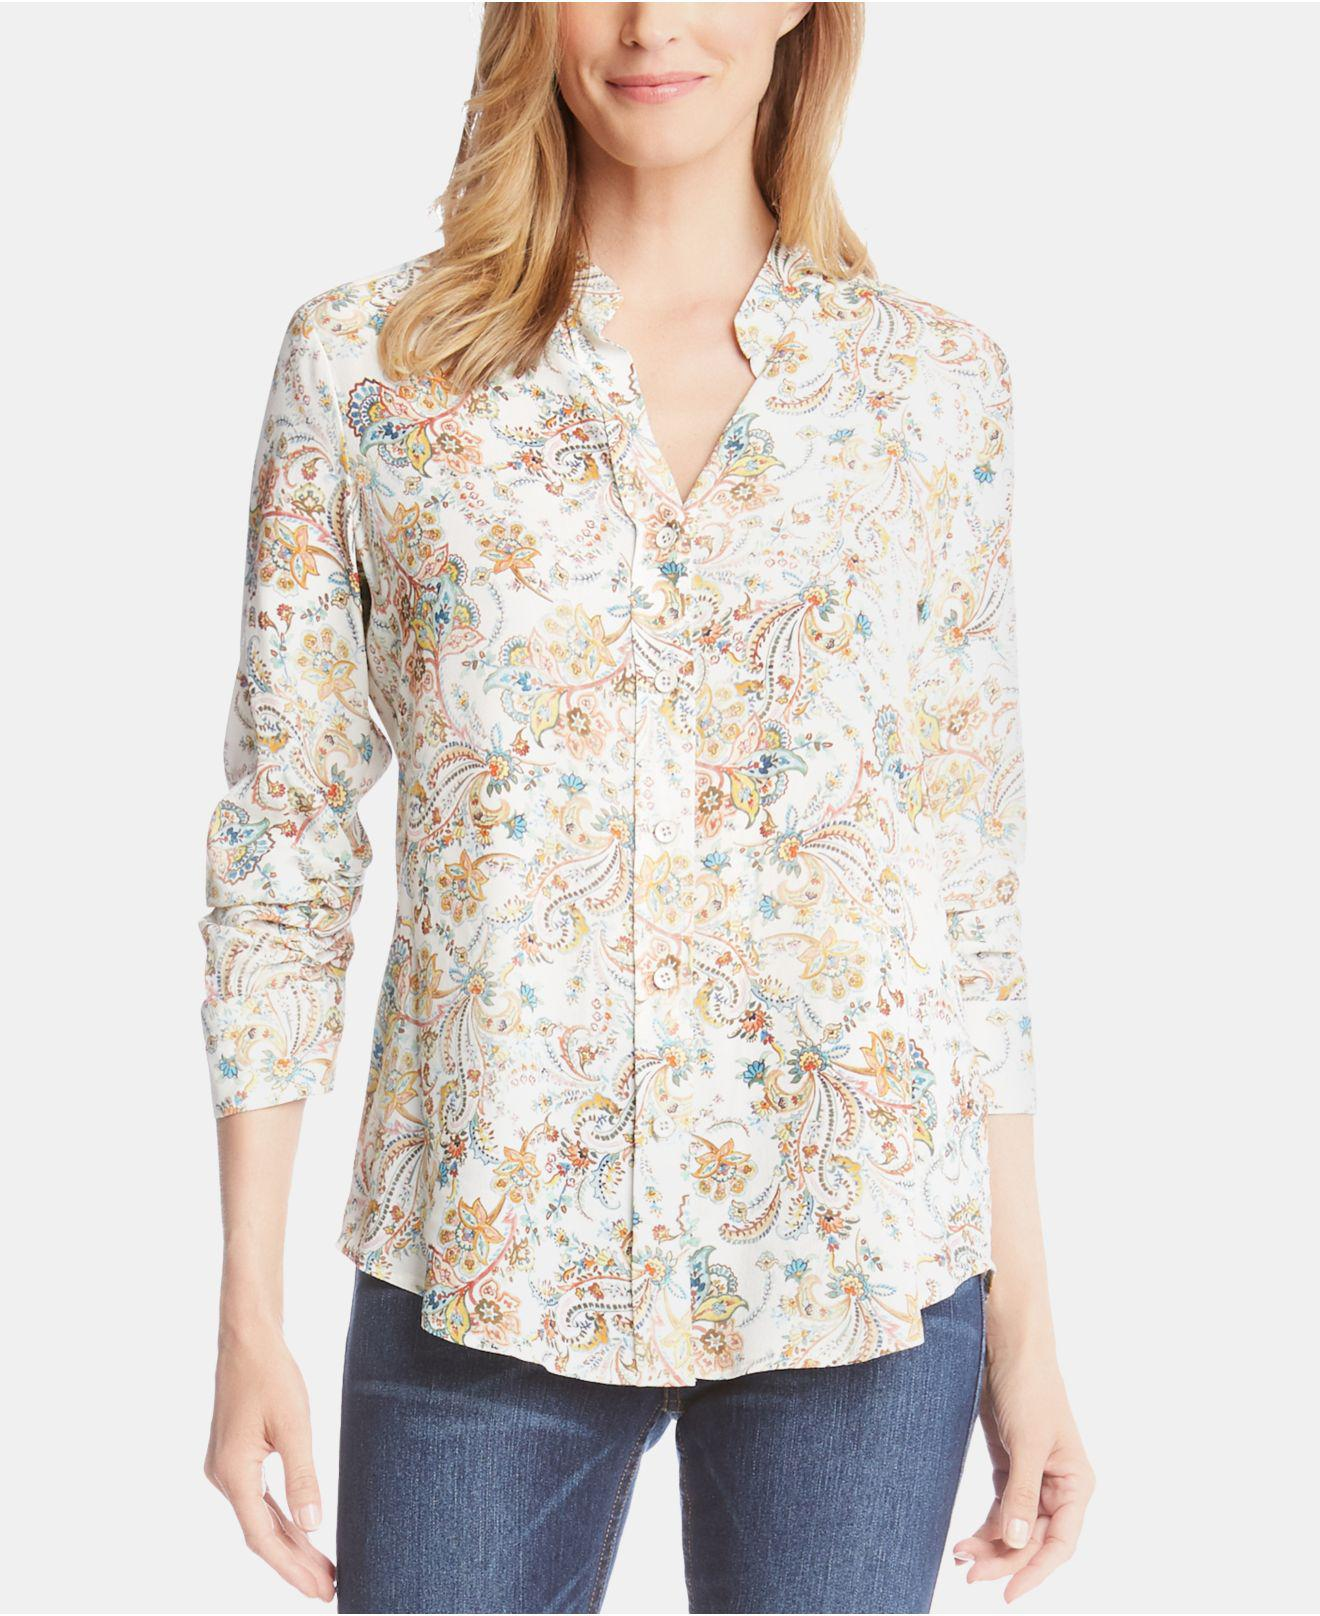 c81f786a2fa94b Lyst - Karen Kane Printed Shirred-sleeve Button-up Top